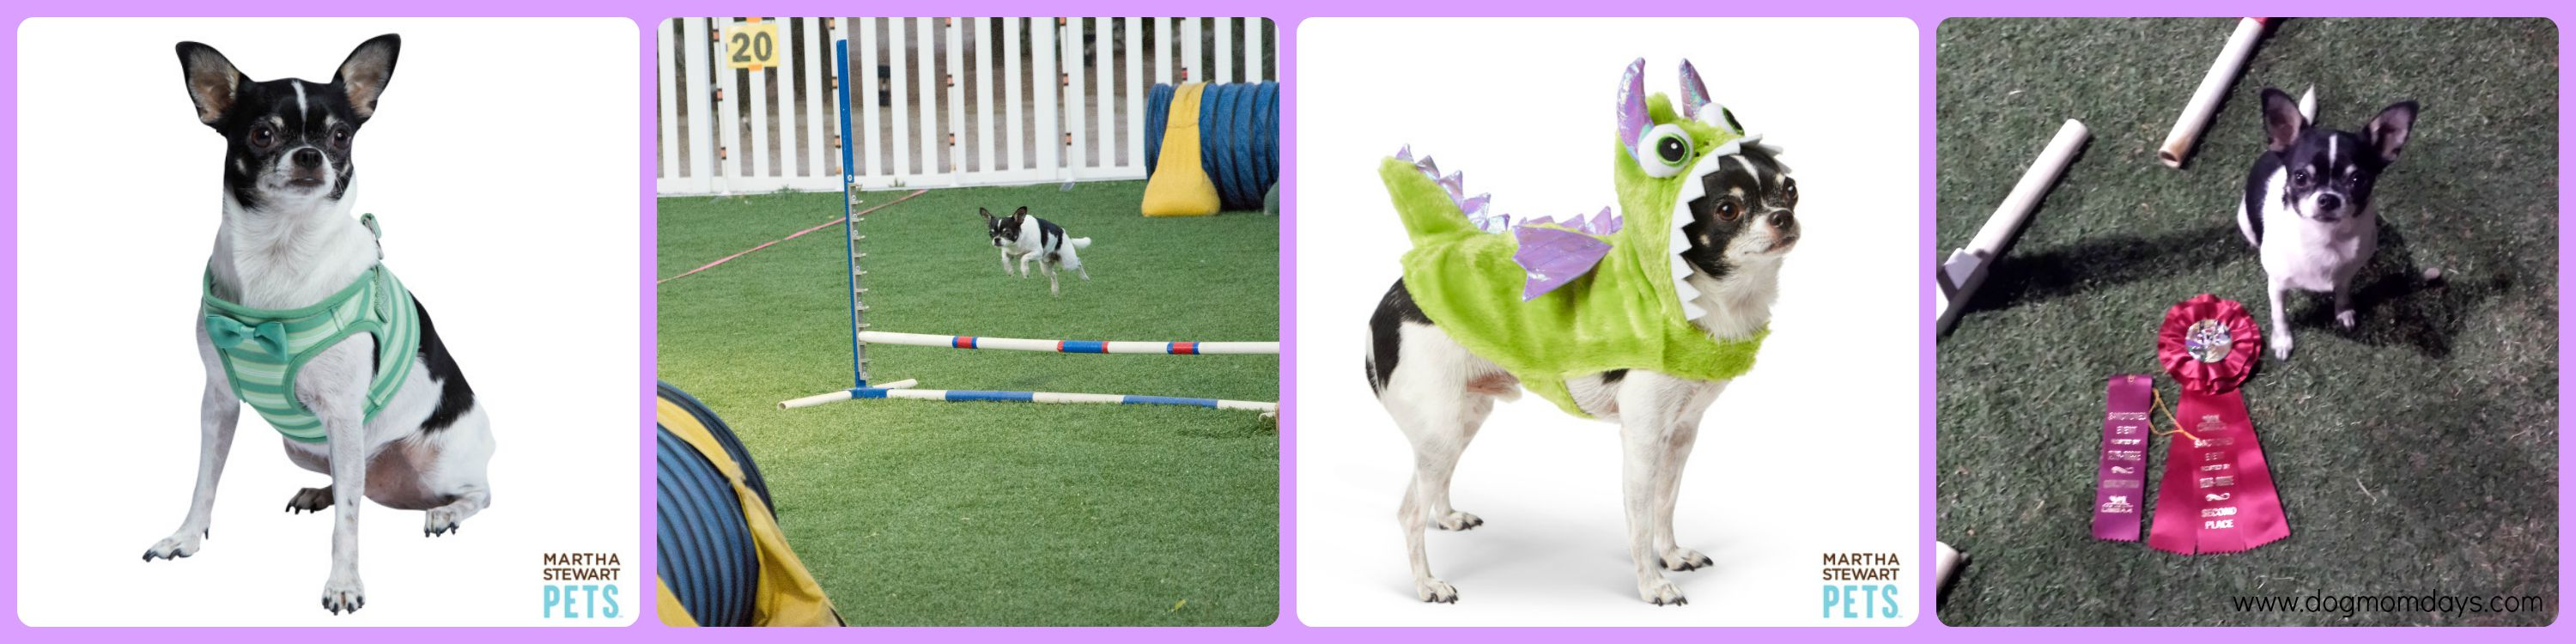 Chihuahua modeling and agility